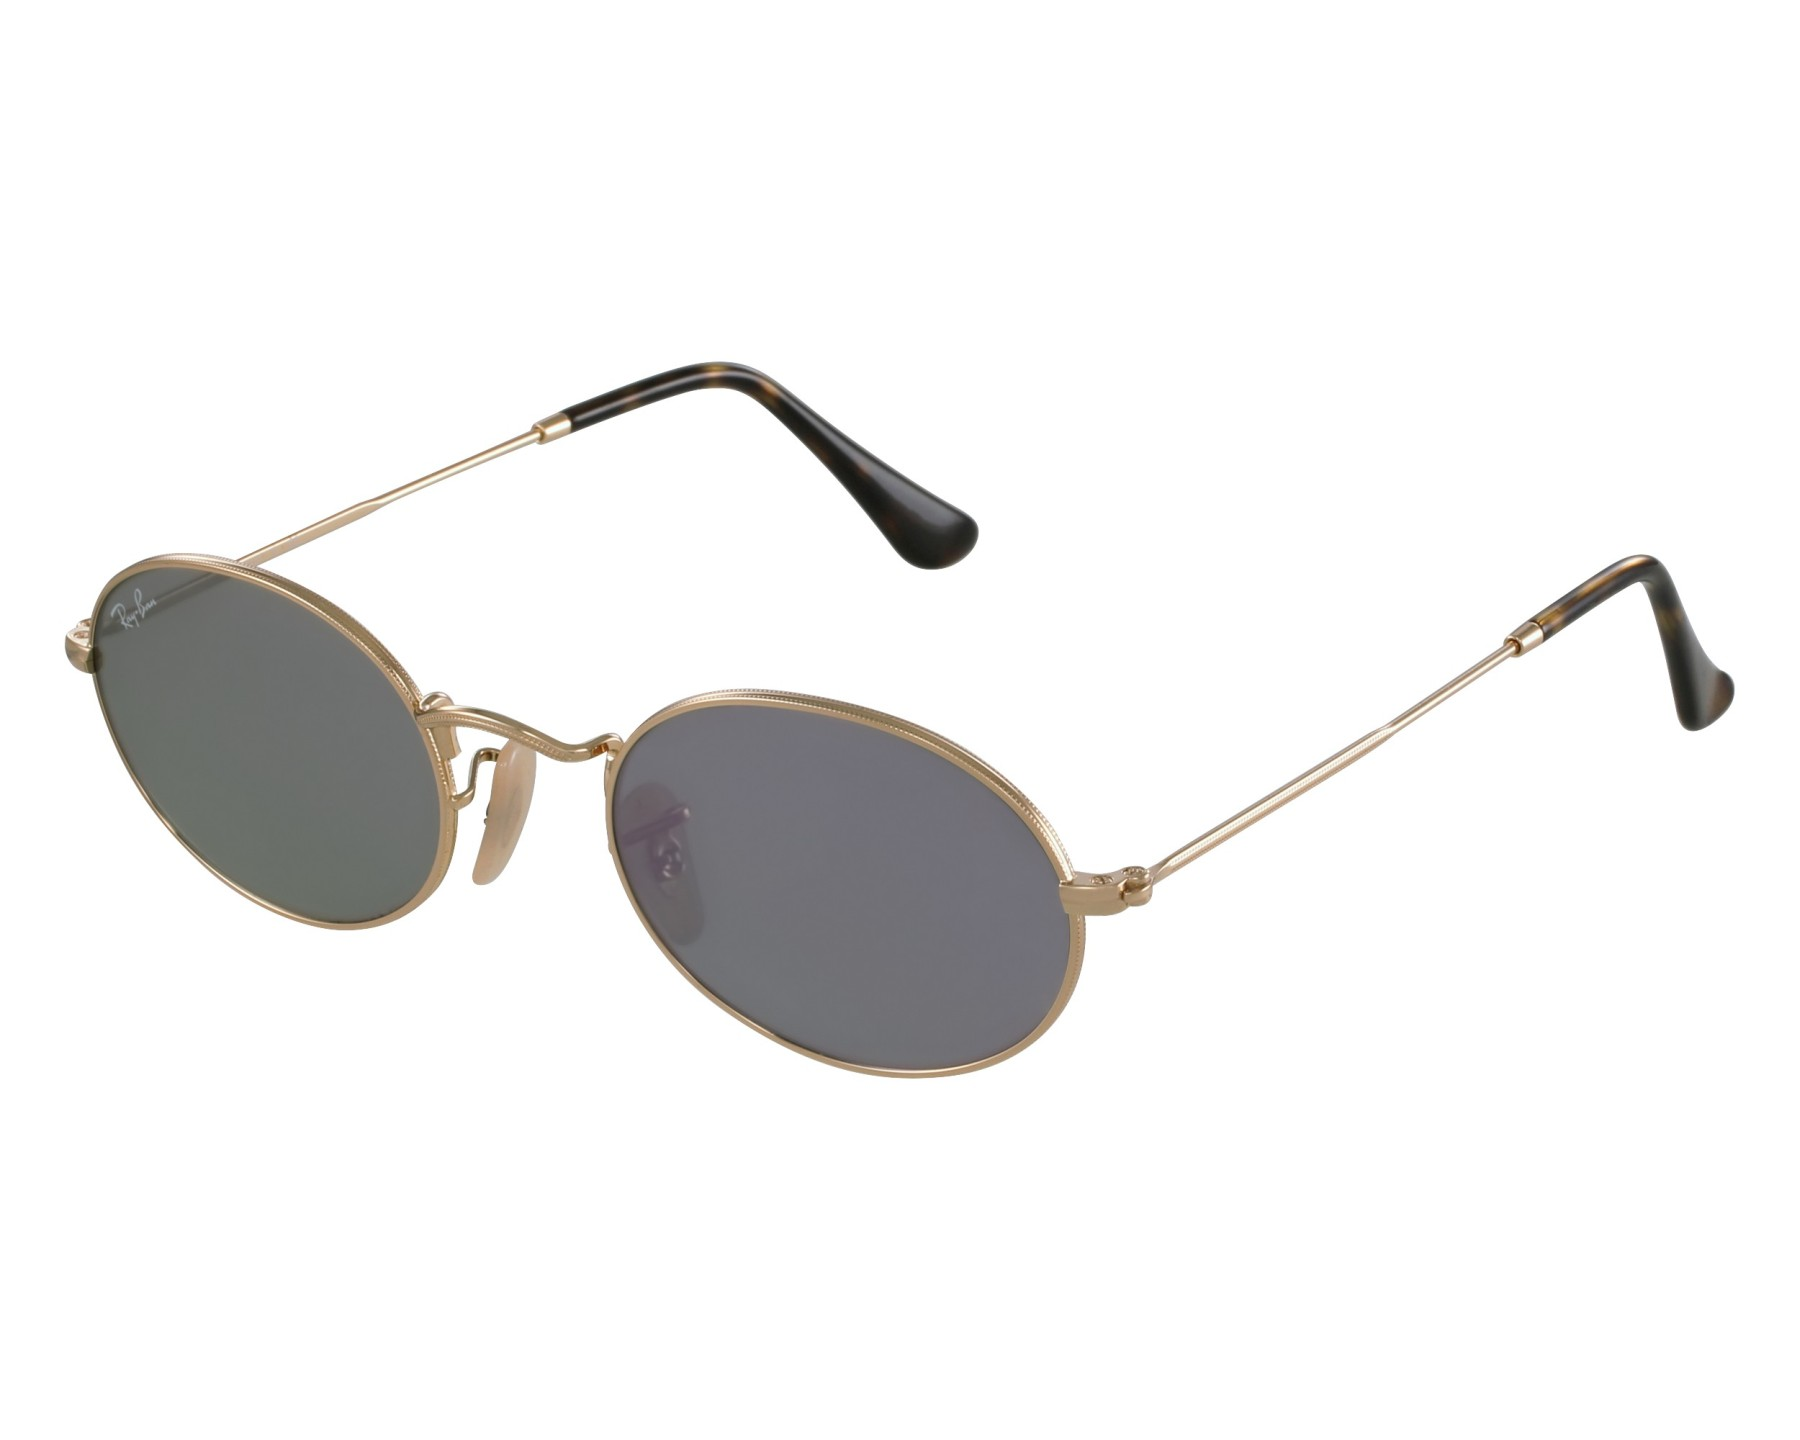 68106ed1088 Sunglasses Ray-Ban RB-3547-N 001 8O - Gold front view